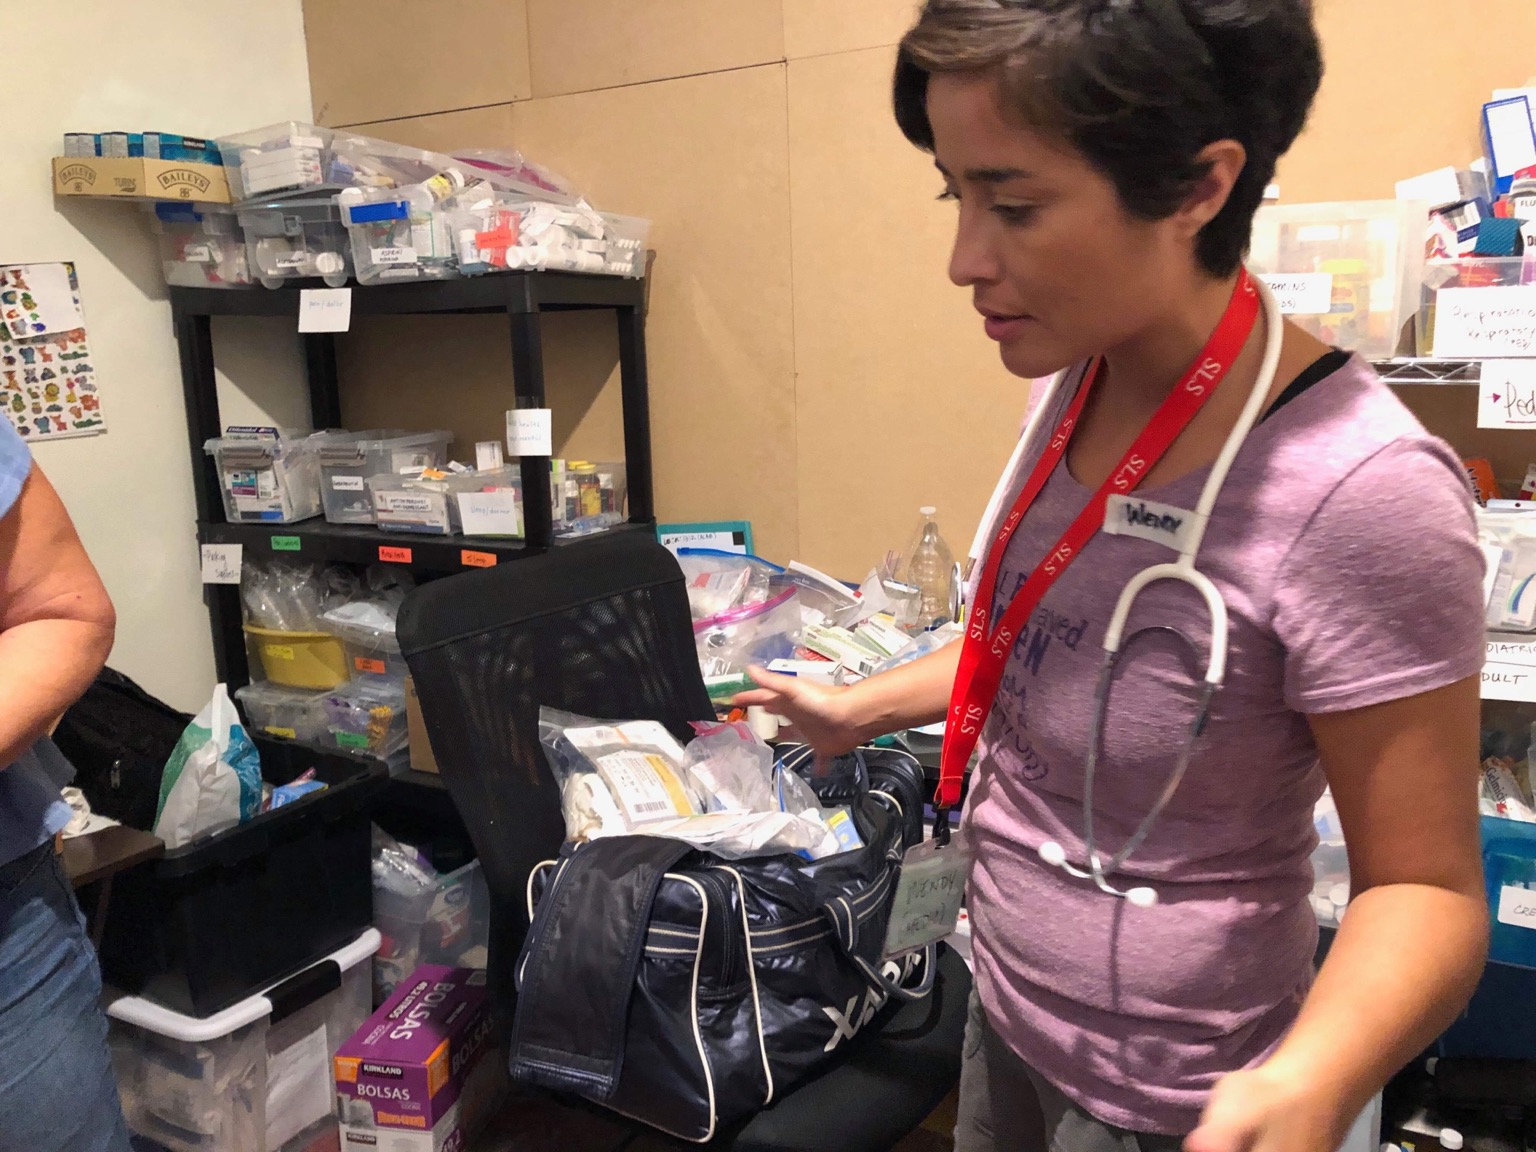 Frontline member, Wendy Barranco works at medical clinic in Tijuana, Mexico.